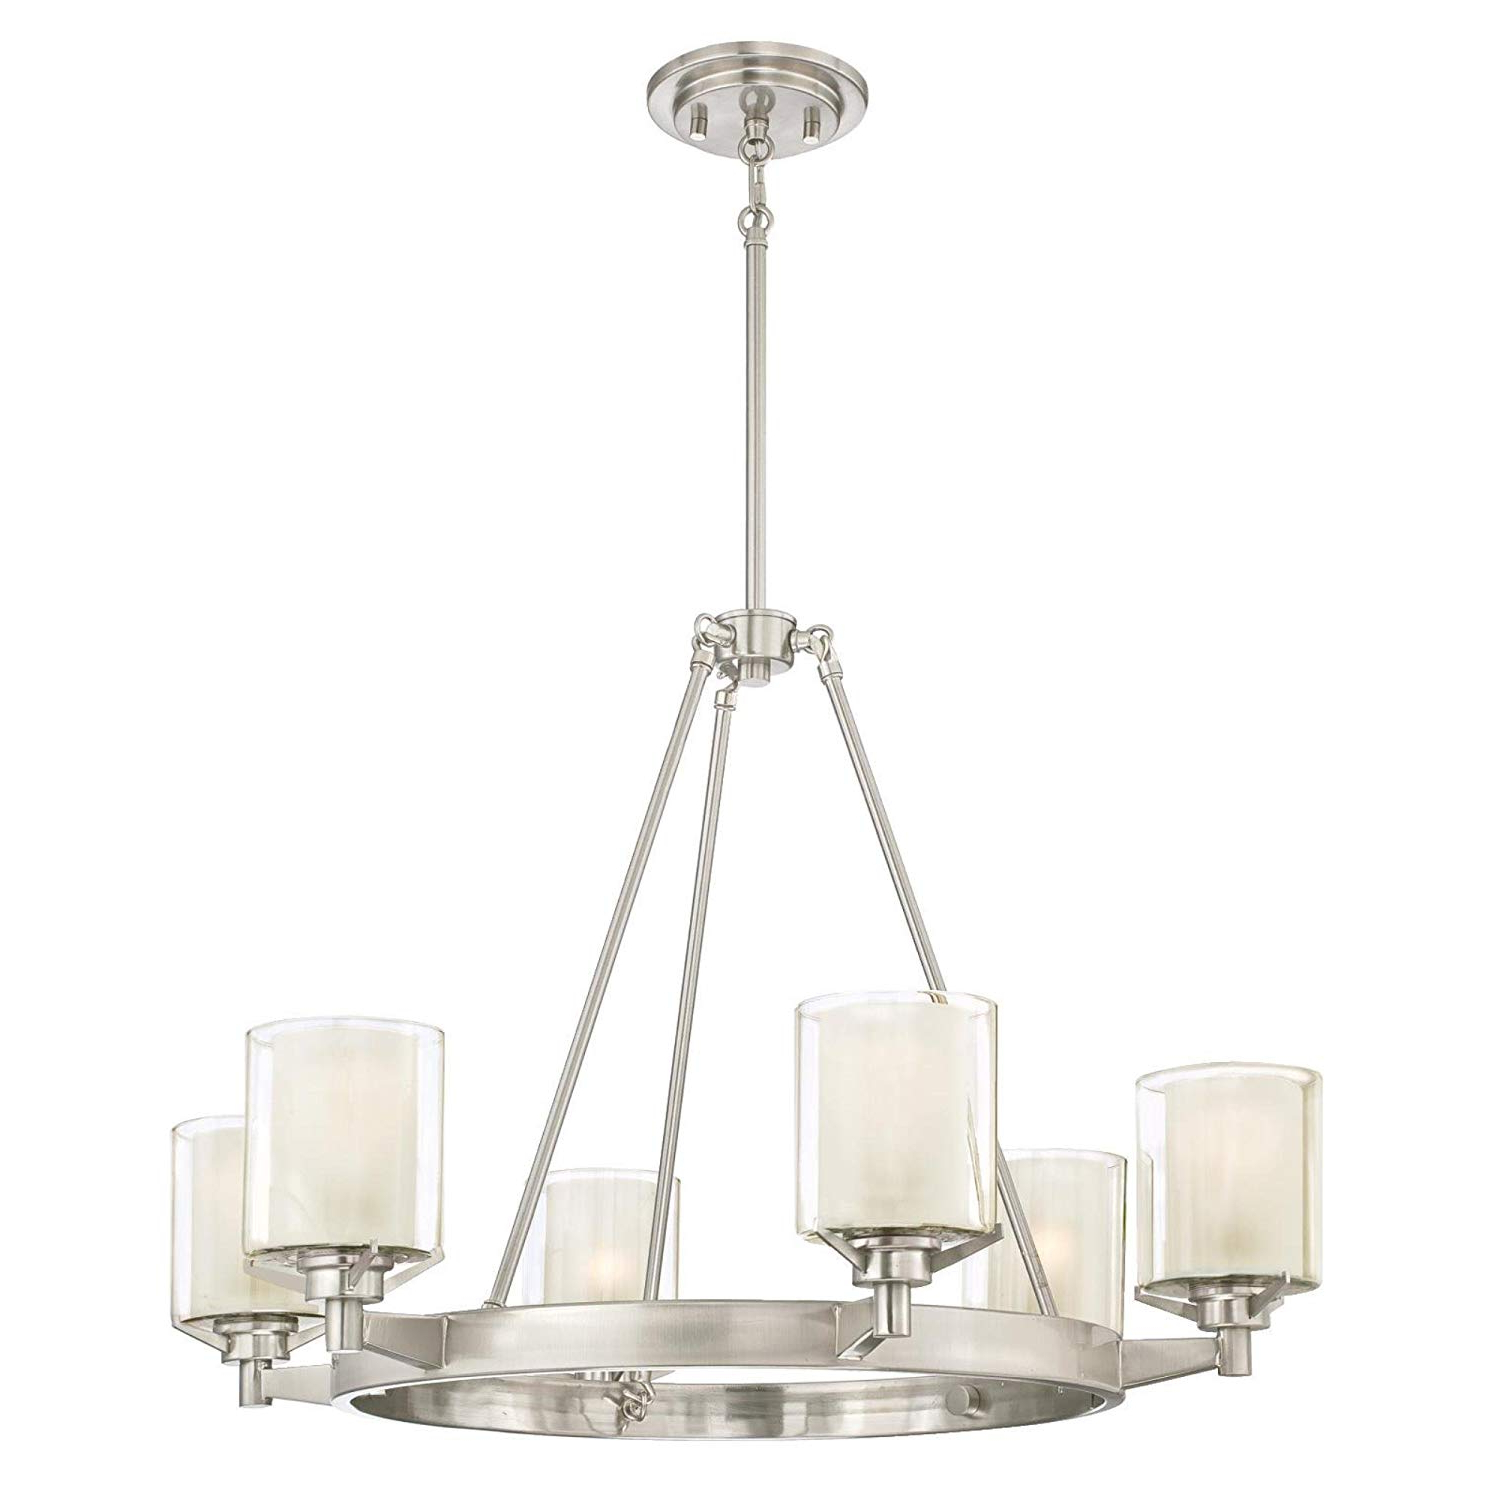 Westinghouse Lighting 6330700 Glenford Six Light Indoor Chandelier, Brushed  Nickel Finish With Frosted Inner And Clear Glass Outer Shades, 6 Pertaining To Newest Lyon 3 Light Unique / Statement Chandeliers (View 25 of 25)